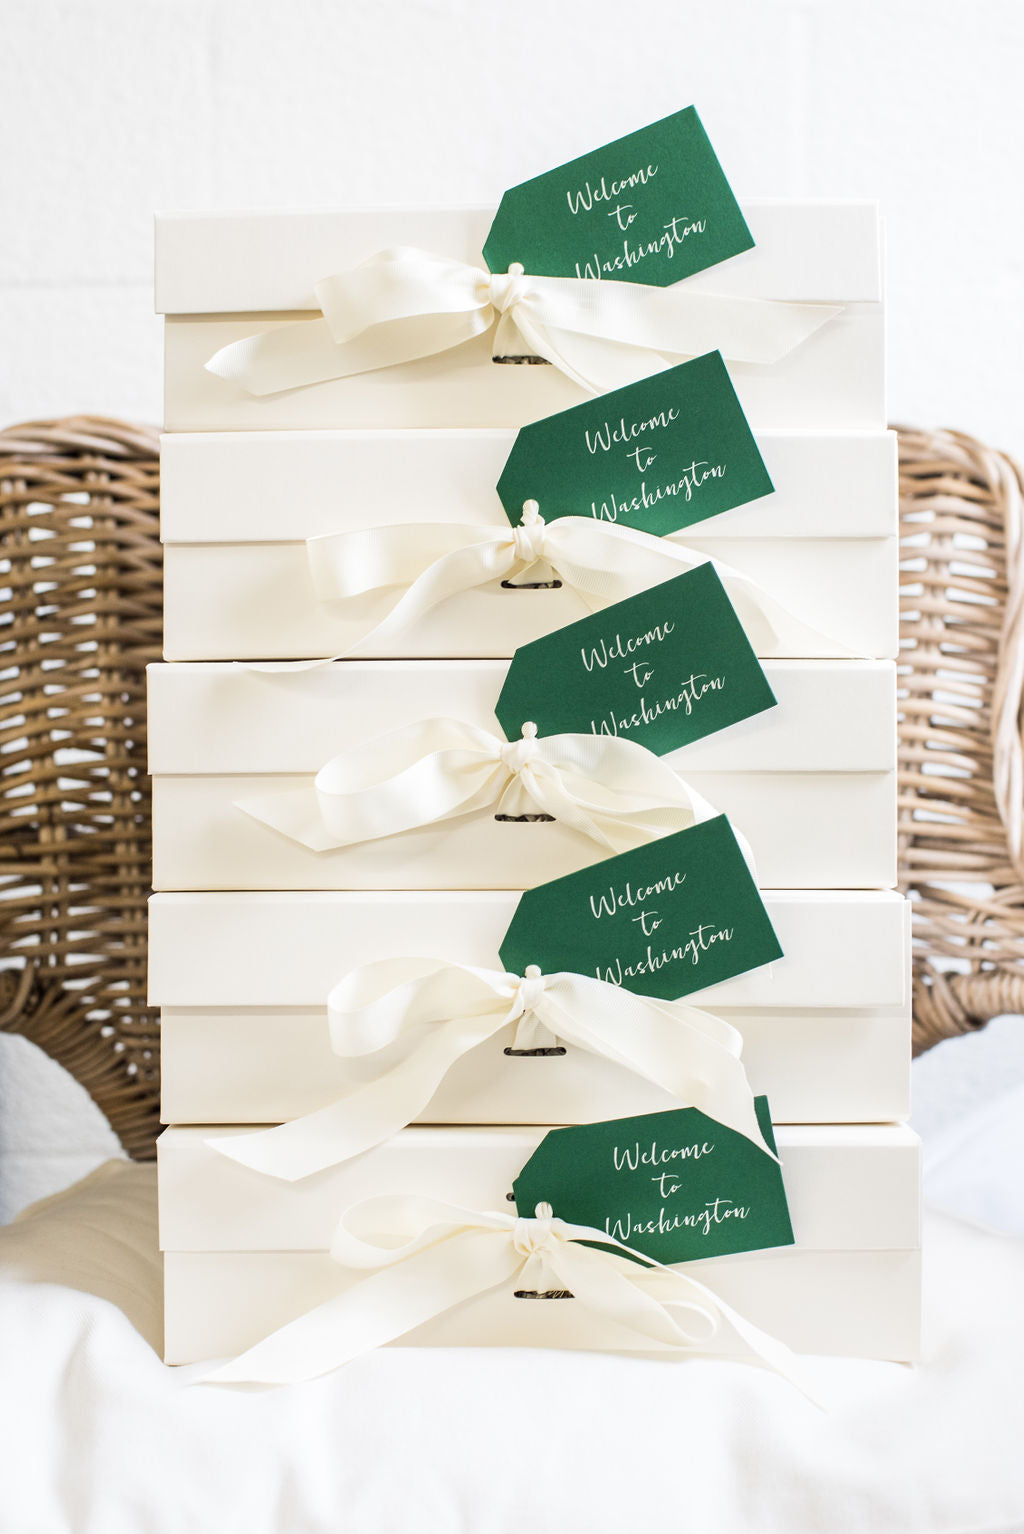 Washington DC wedding welcome gifts